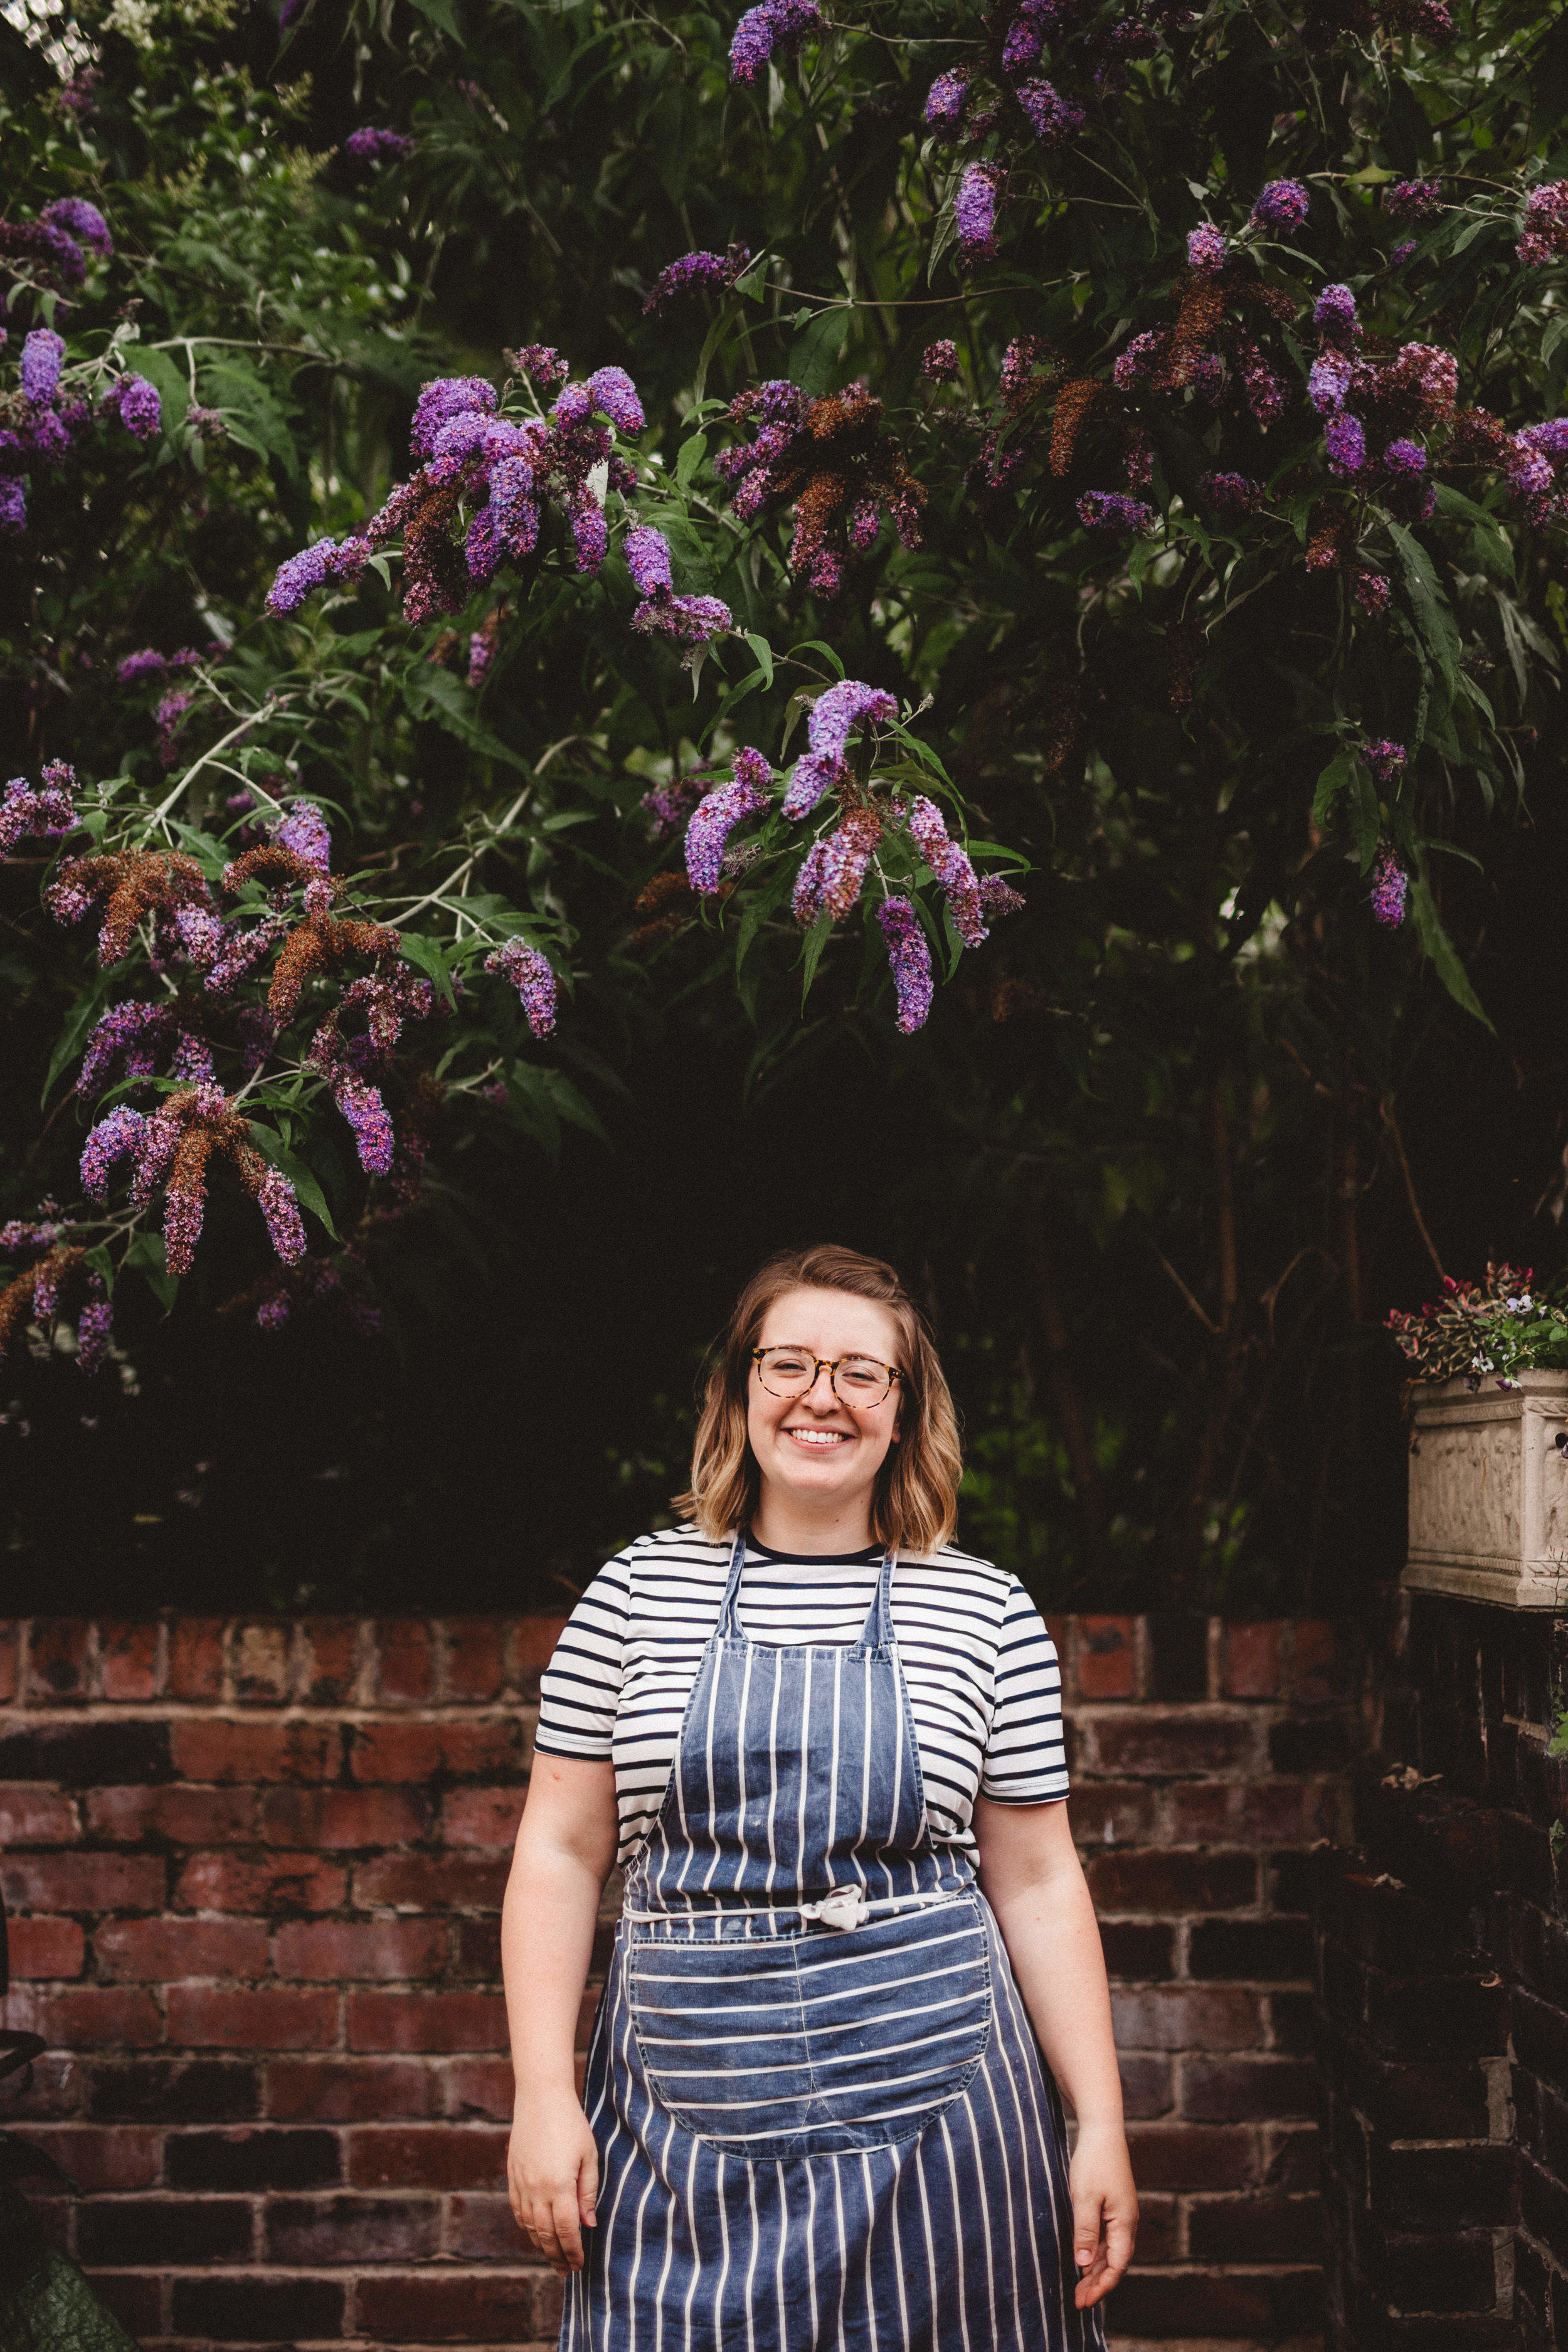 Hello! I'm Sara... - I'm the creator and baker behind The Bake Lab. Baking has always been a passion, every since I got my first baking book for my 7th birthday. In 2012 I decided to pursue the art of baking more seriously with a full time artisan baking course at The School of Artisan Food.In my 10 months at the school, I went on placements to lots of amazing bakeries and learnt the value of top quality ingredients, skill and time.After my course, I went to work at Forge Bakehouse and honed my skills by working with breads, pastries and sweet treats - after 3 years I felt it was time to branch out on my own.I created The Bake Lab in 2016 to quench my creative thirst for fun and outlandish cakes that taste amazing. As time goes on, I am loving creating new cakes and flavours every day to satisfy my loyal customers, whether they are buying a small cake at a market or a whole wedding cake.